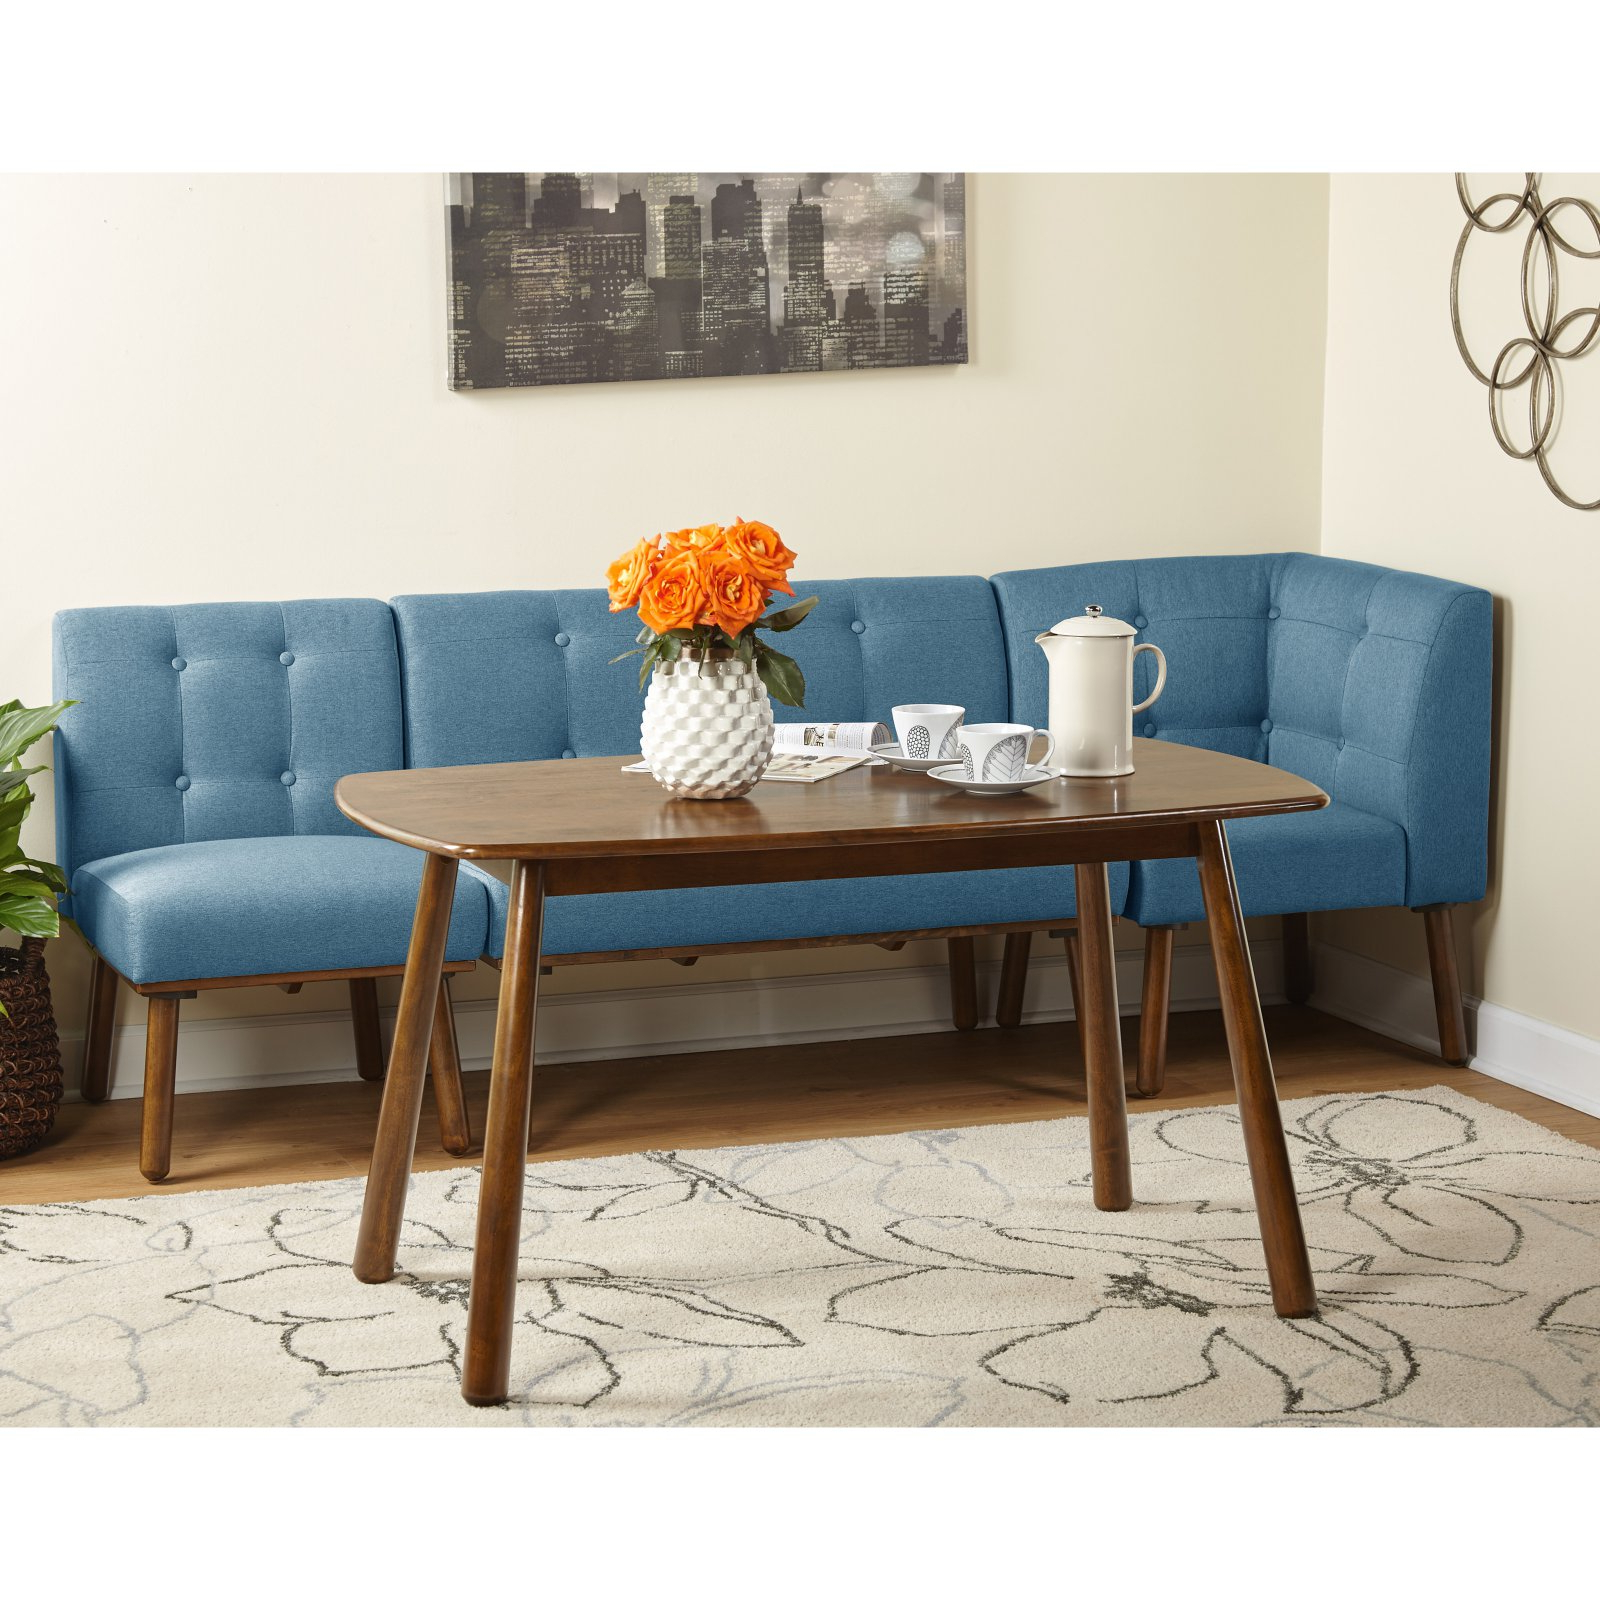 Mukai 5 Piece Dining Sets Regarding Fashionable Target Marketing Systems Playmate 4 Piece Dining Table Set Blue (View 13 of 25)